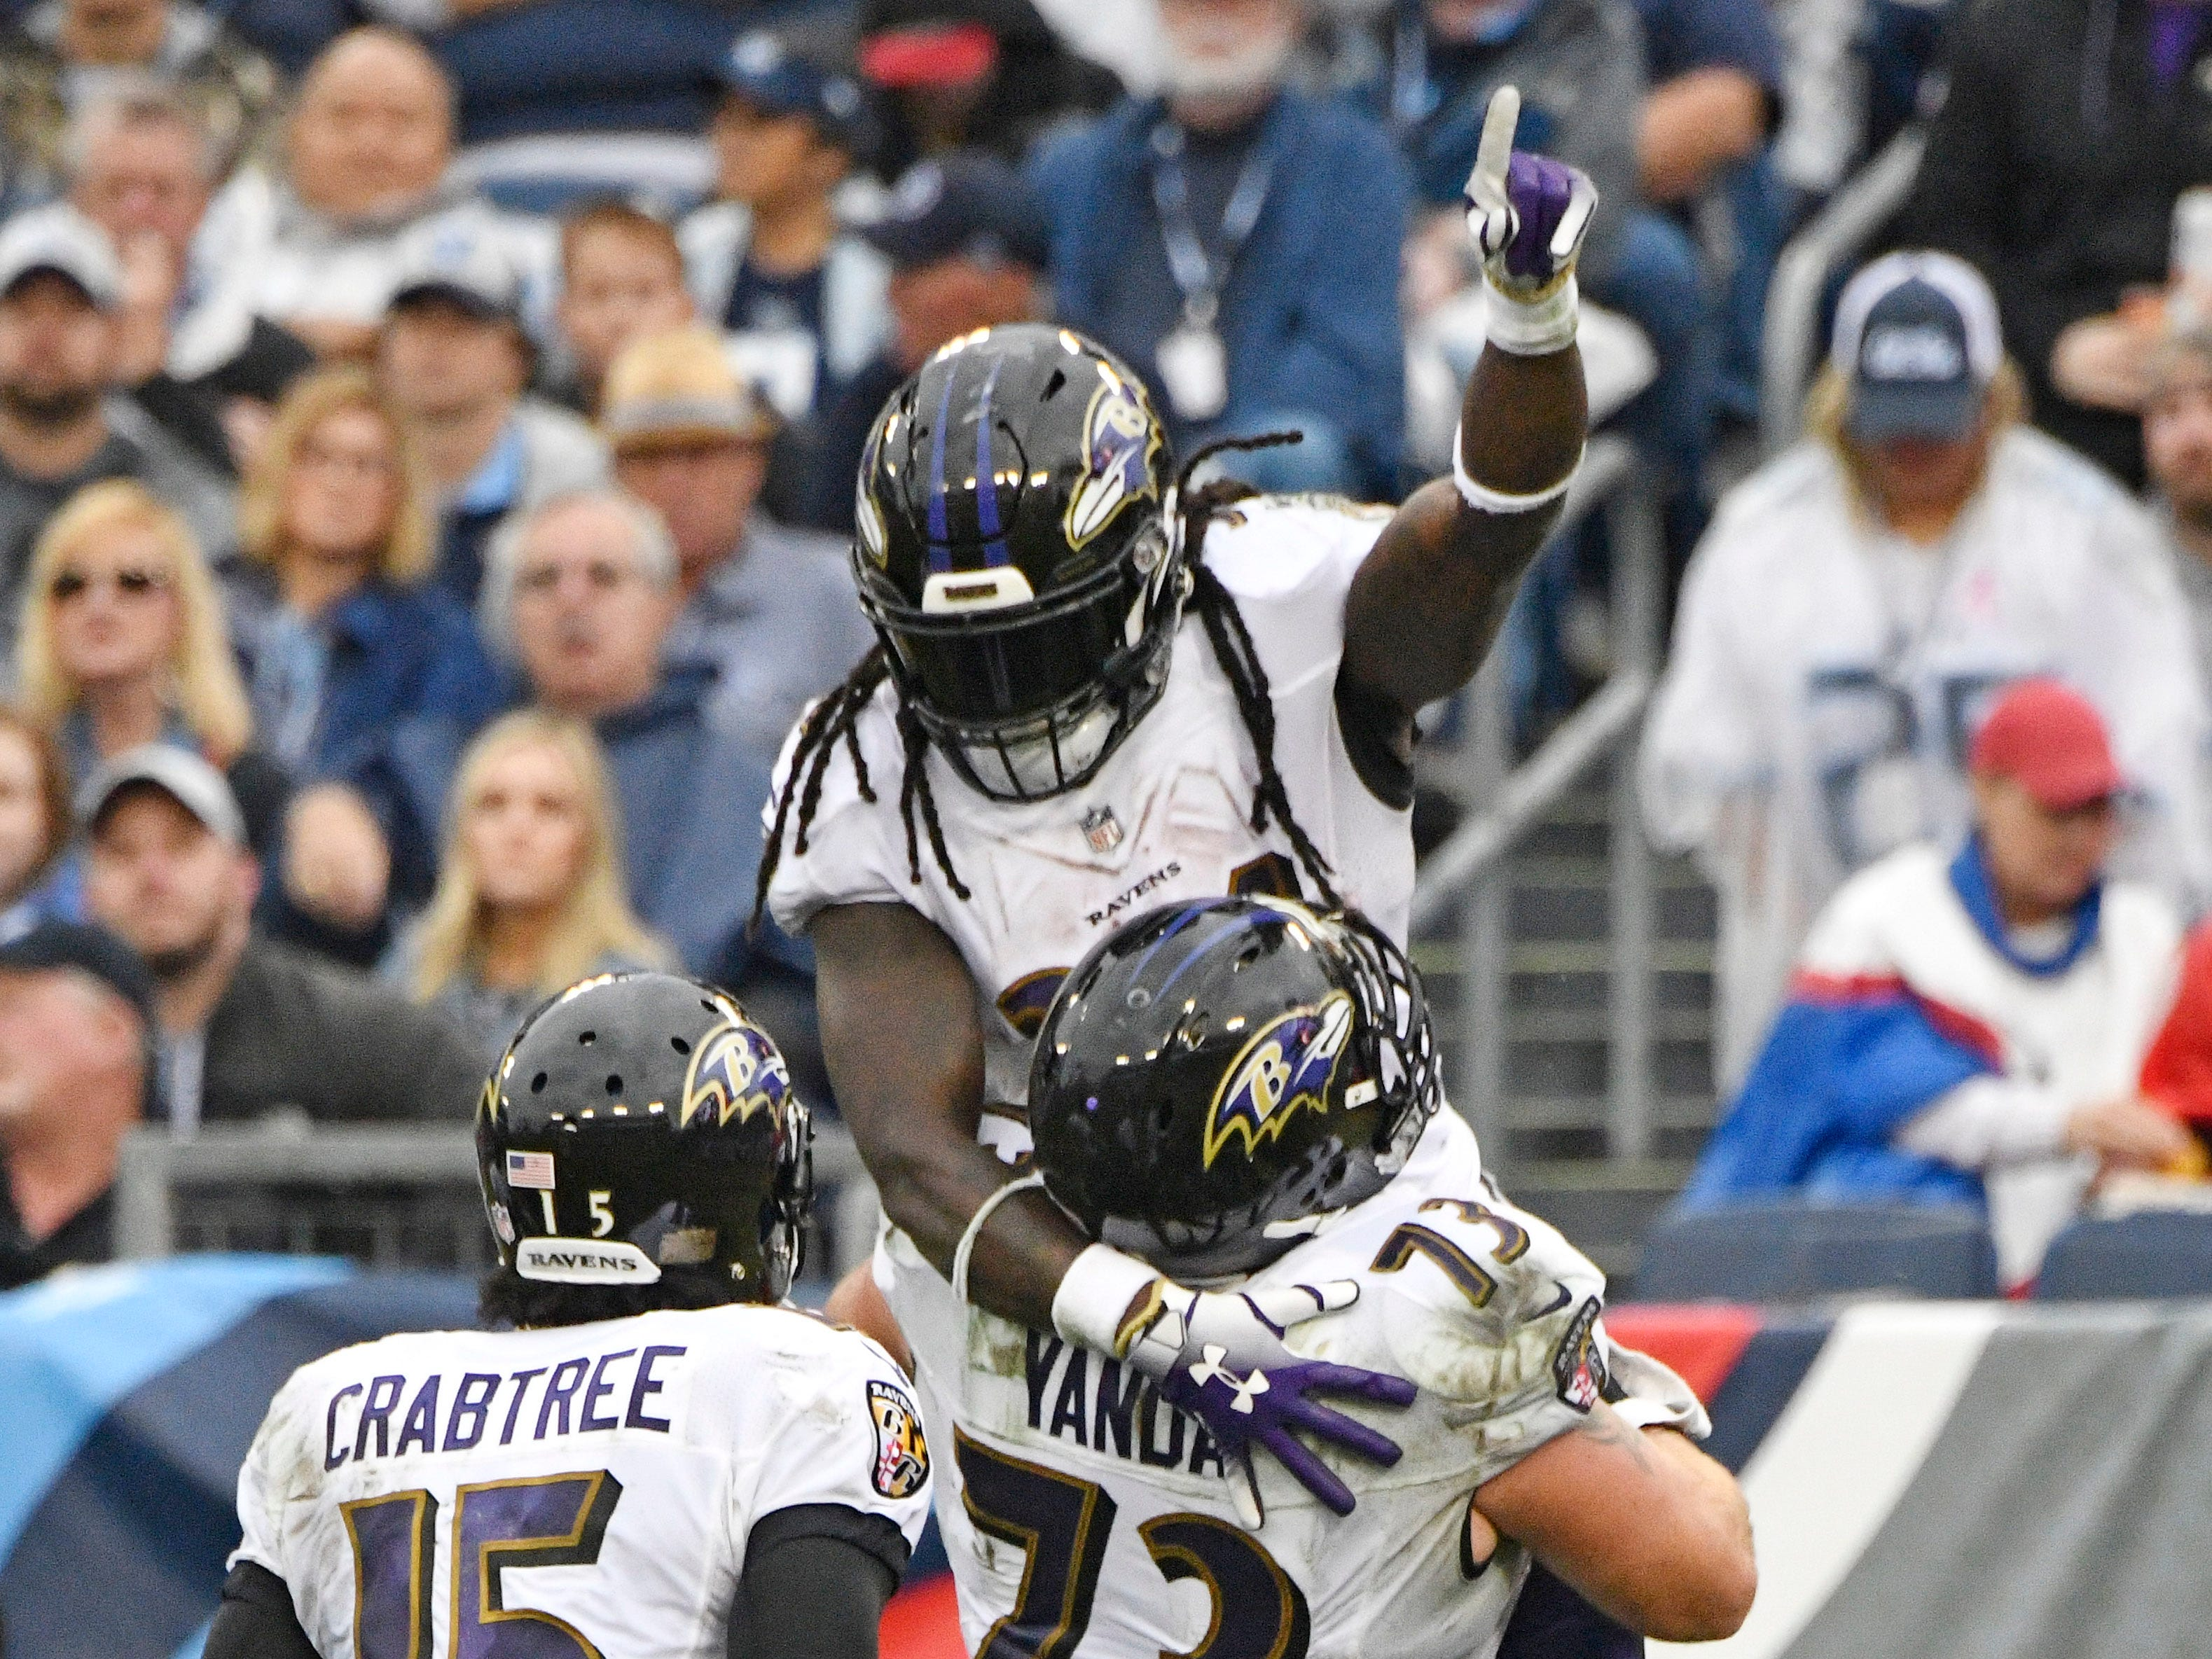 Ravens running back Alex Collins (34) celebrates his touchdown with Ravens offensive guard Marshal Yanda (73) In the second quarter at Nissan Stadium Sunday, Oct. 14, 2018, in Nashville, Tenn.